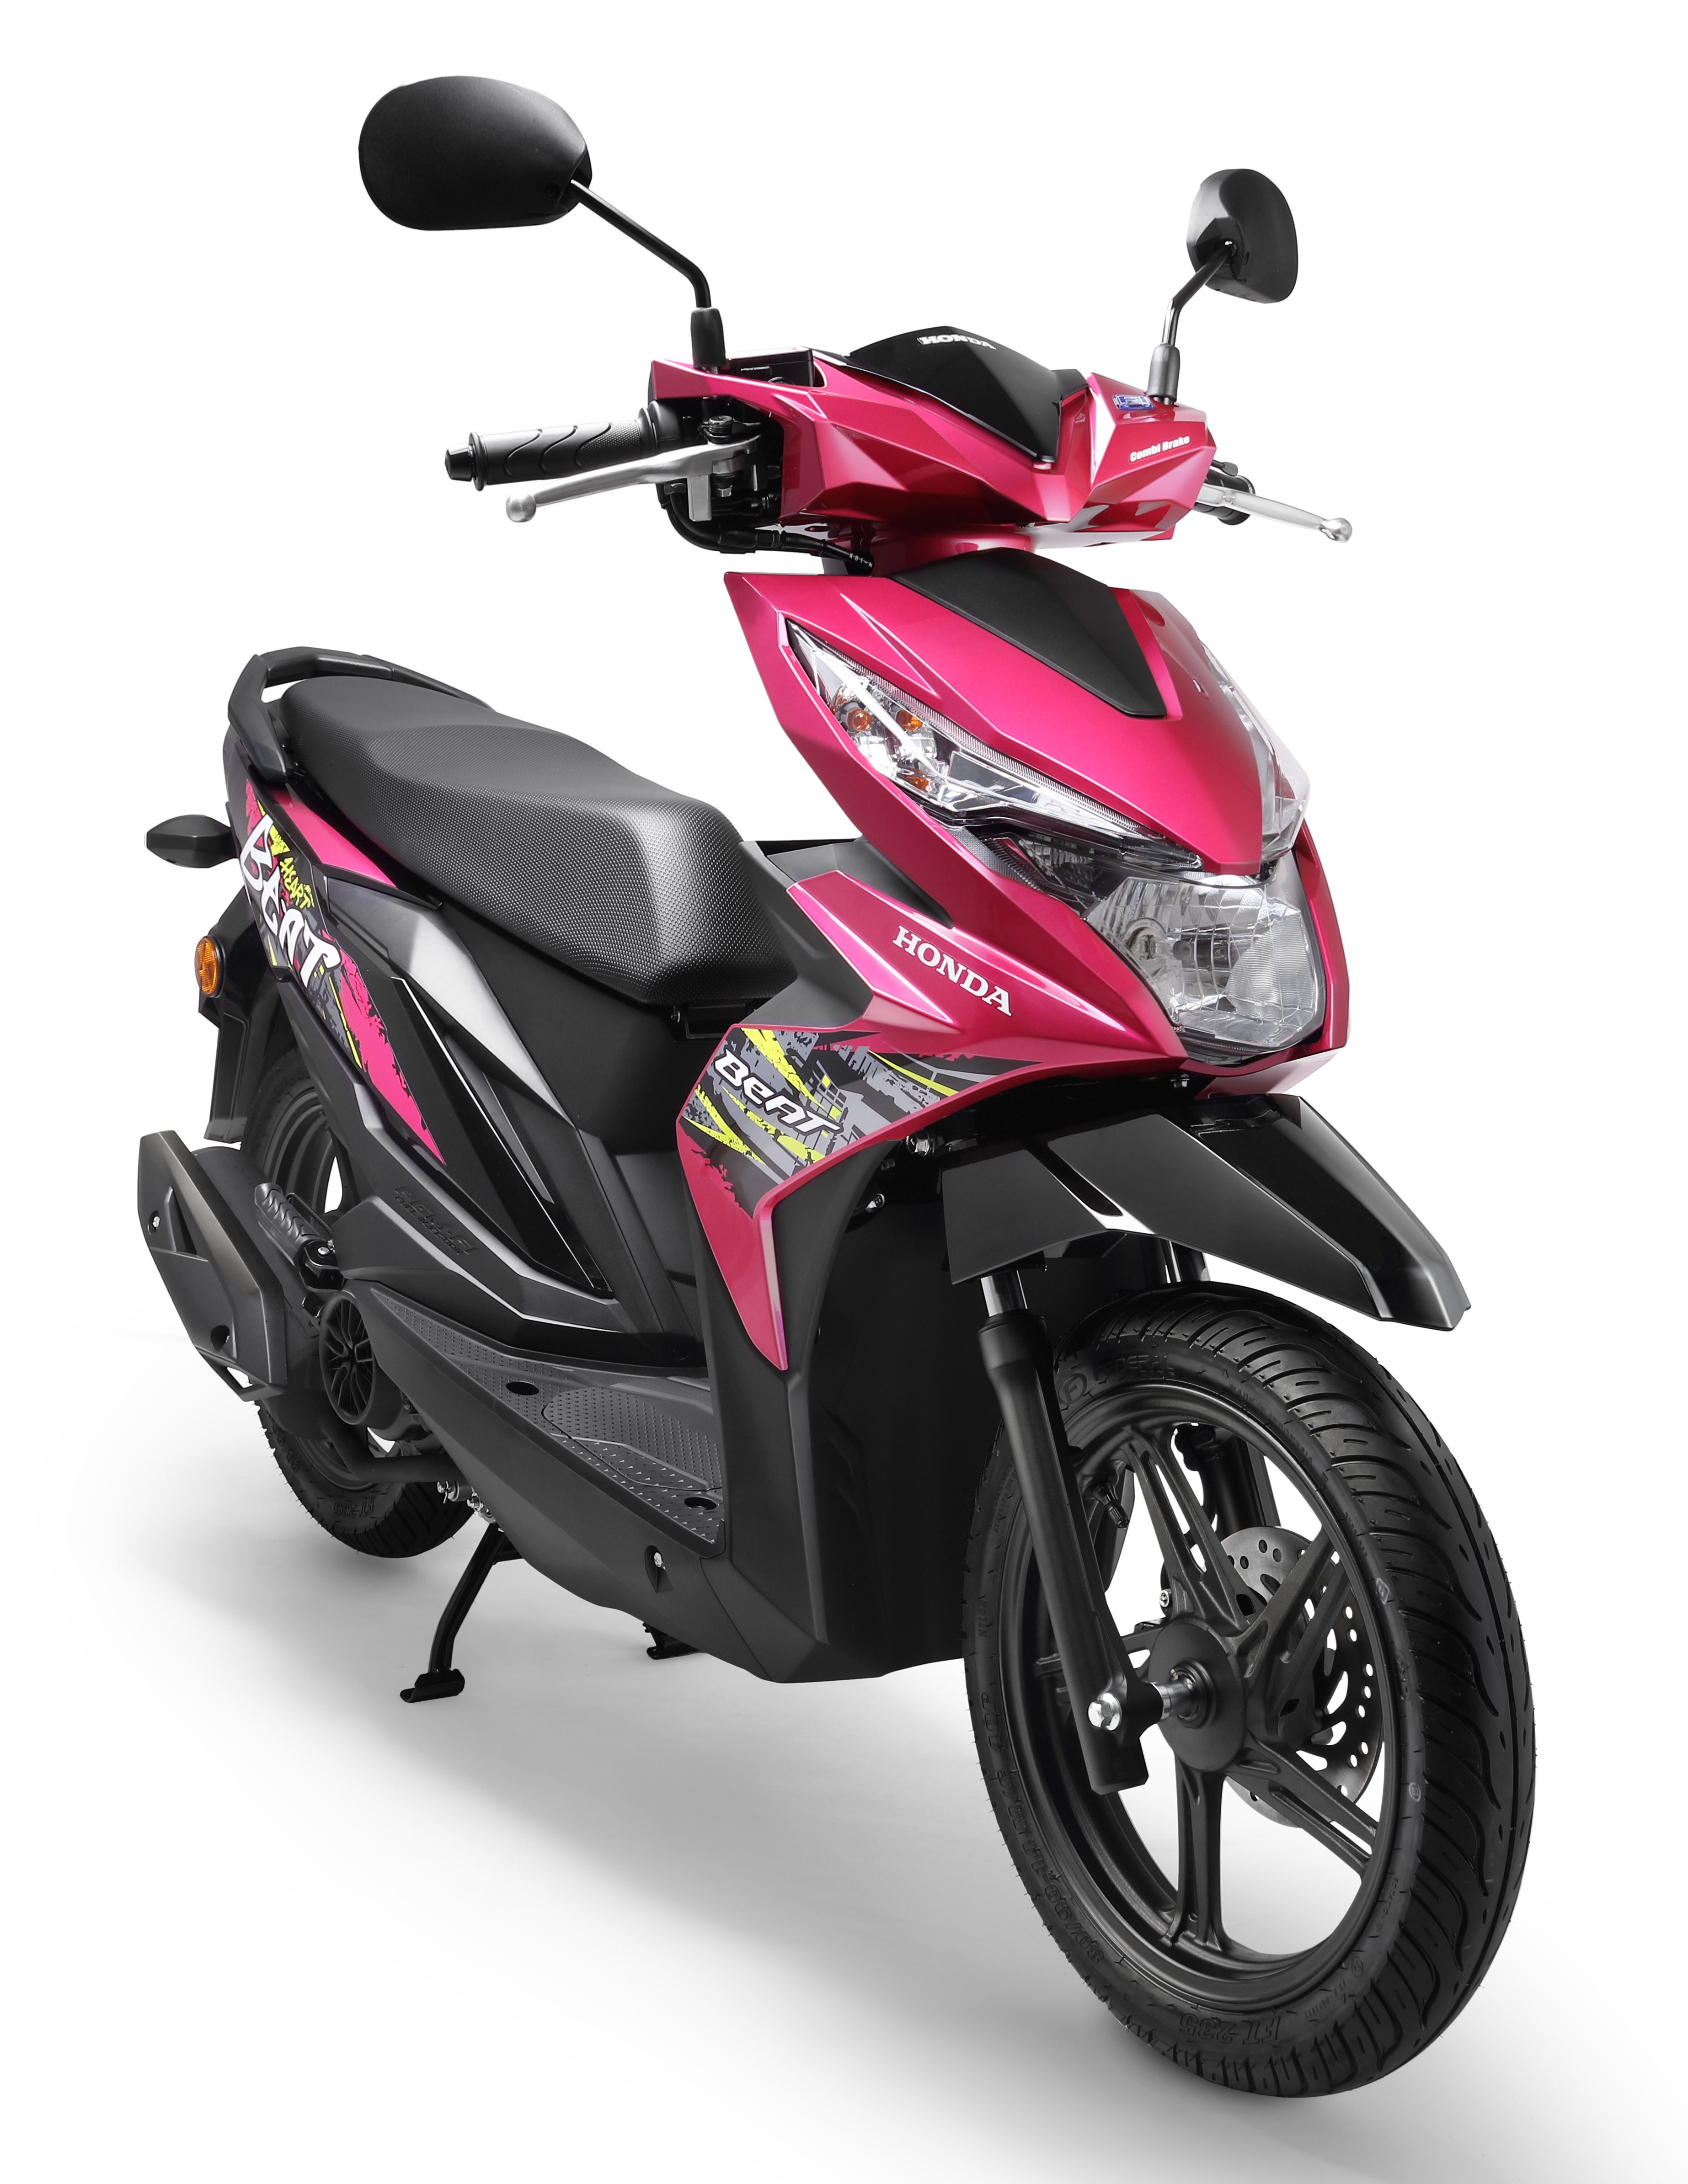 2018 Honda BeAT scooter now on sale – RM5,724 Image 739949